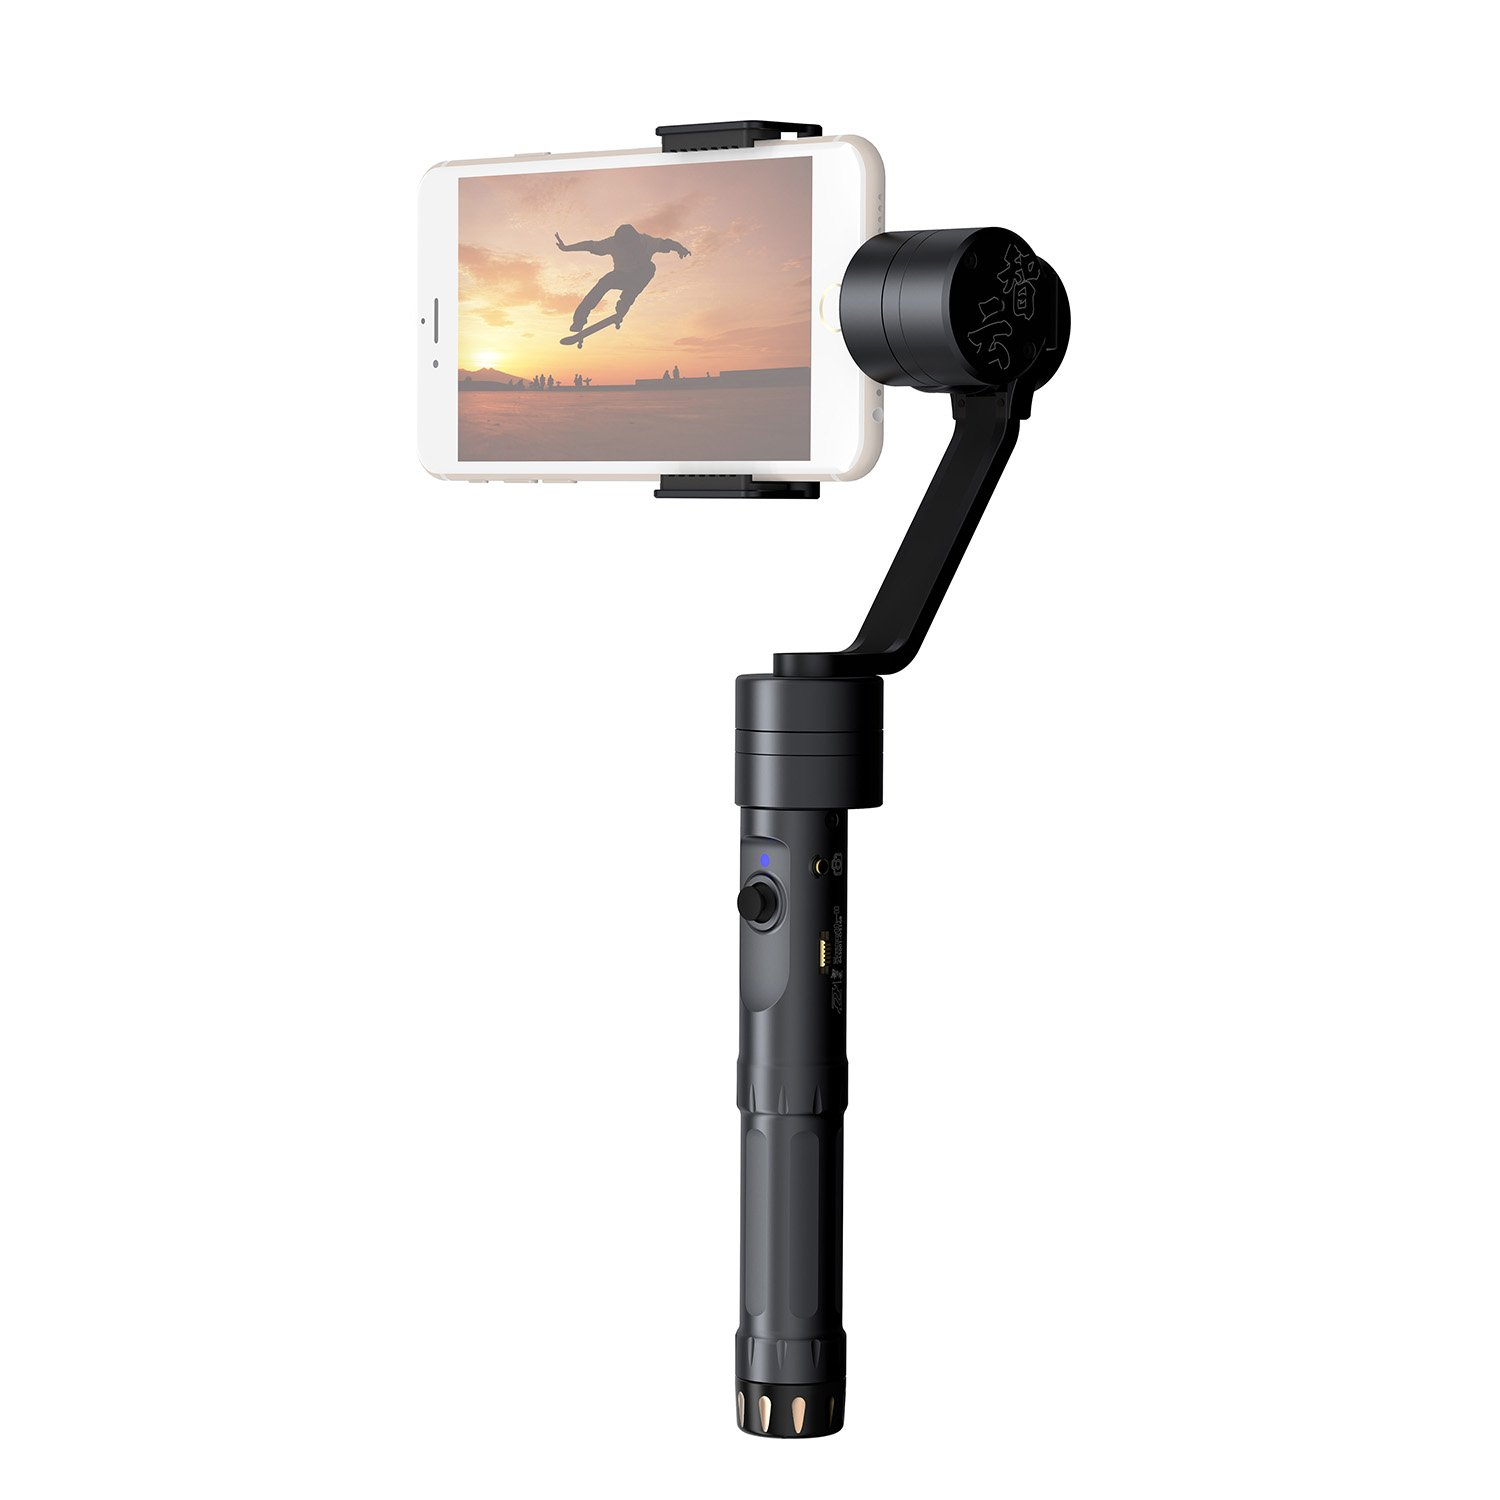 Zhiyun - Z1-Smooth-II 2 3 Axis Brushless Handheld Camera Gimbal Stabilizer APP Bluetooth Control Camera Focus Function for Smartphone Apple iPhone Samsung Galaxy S7 S6 edge IOS Android